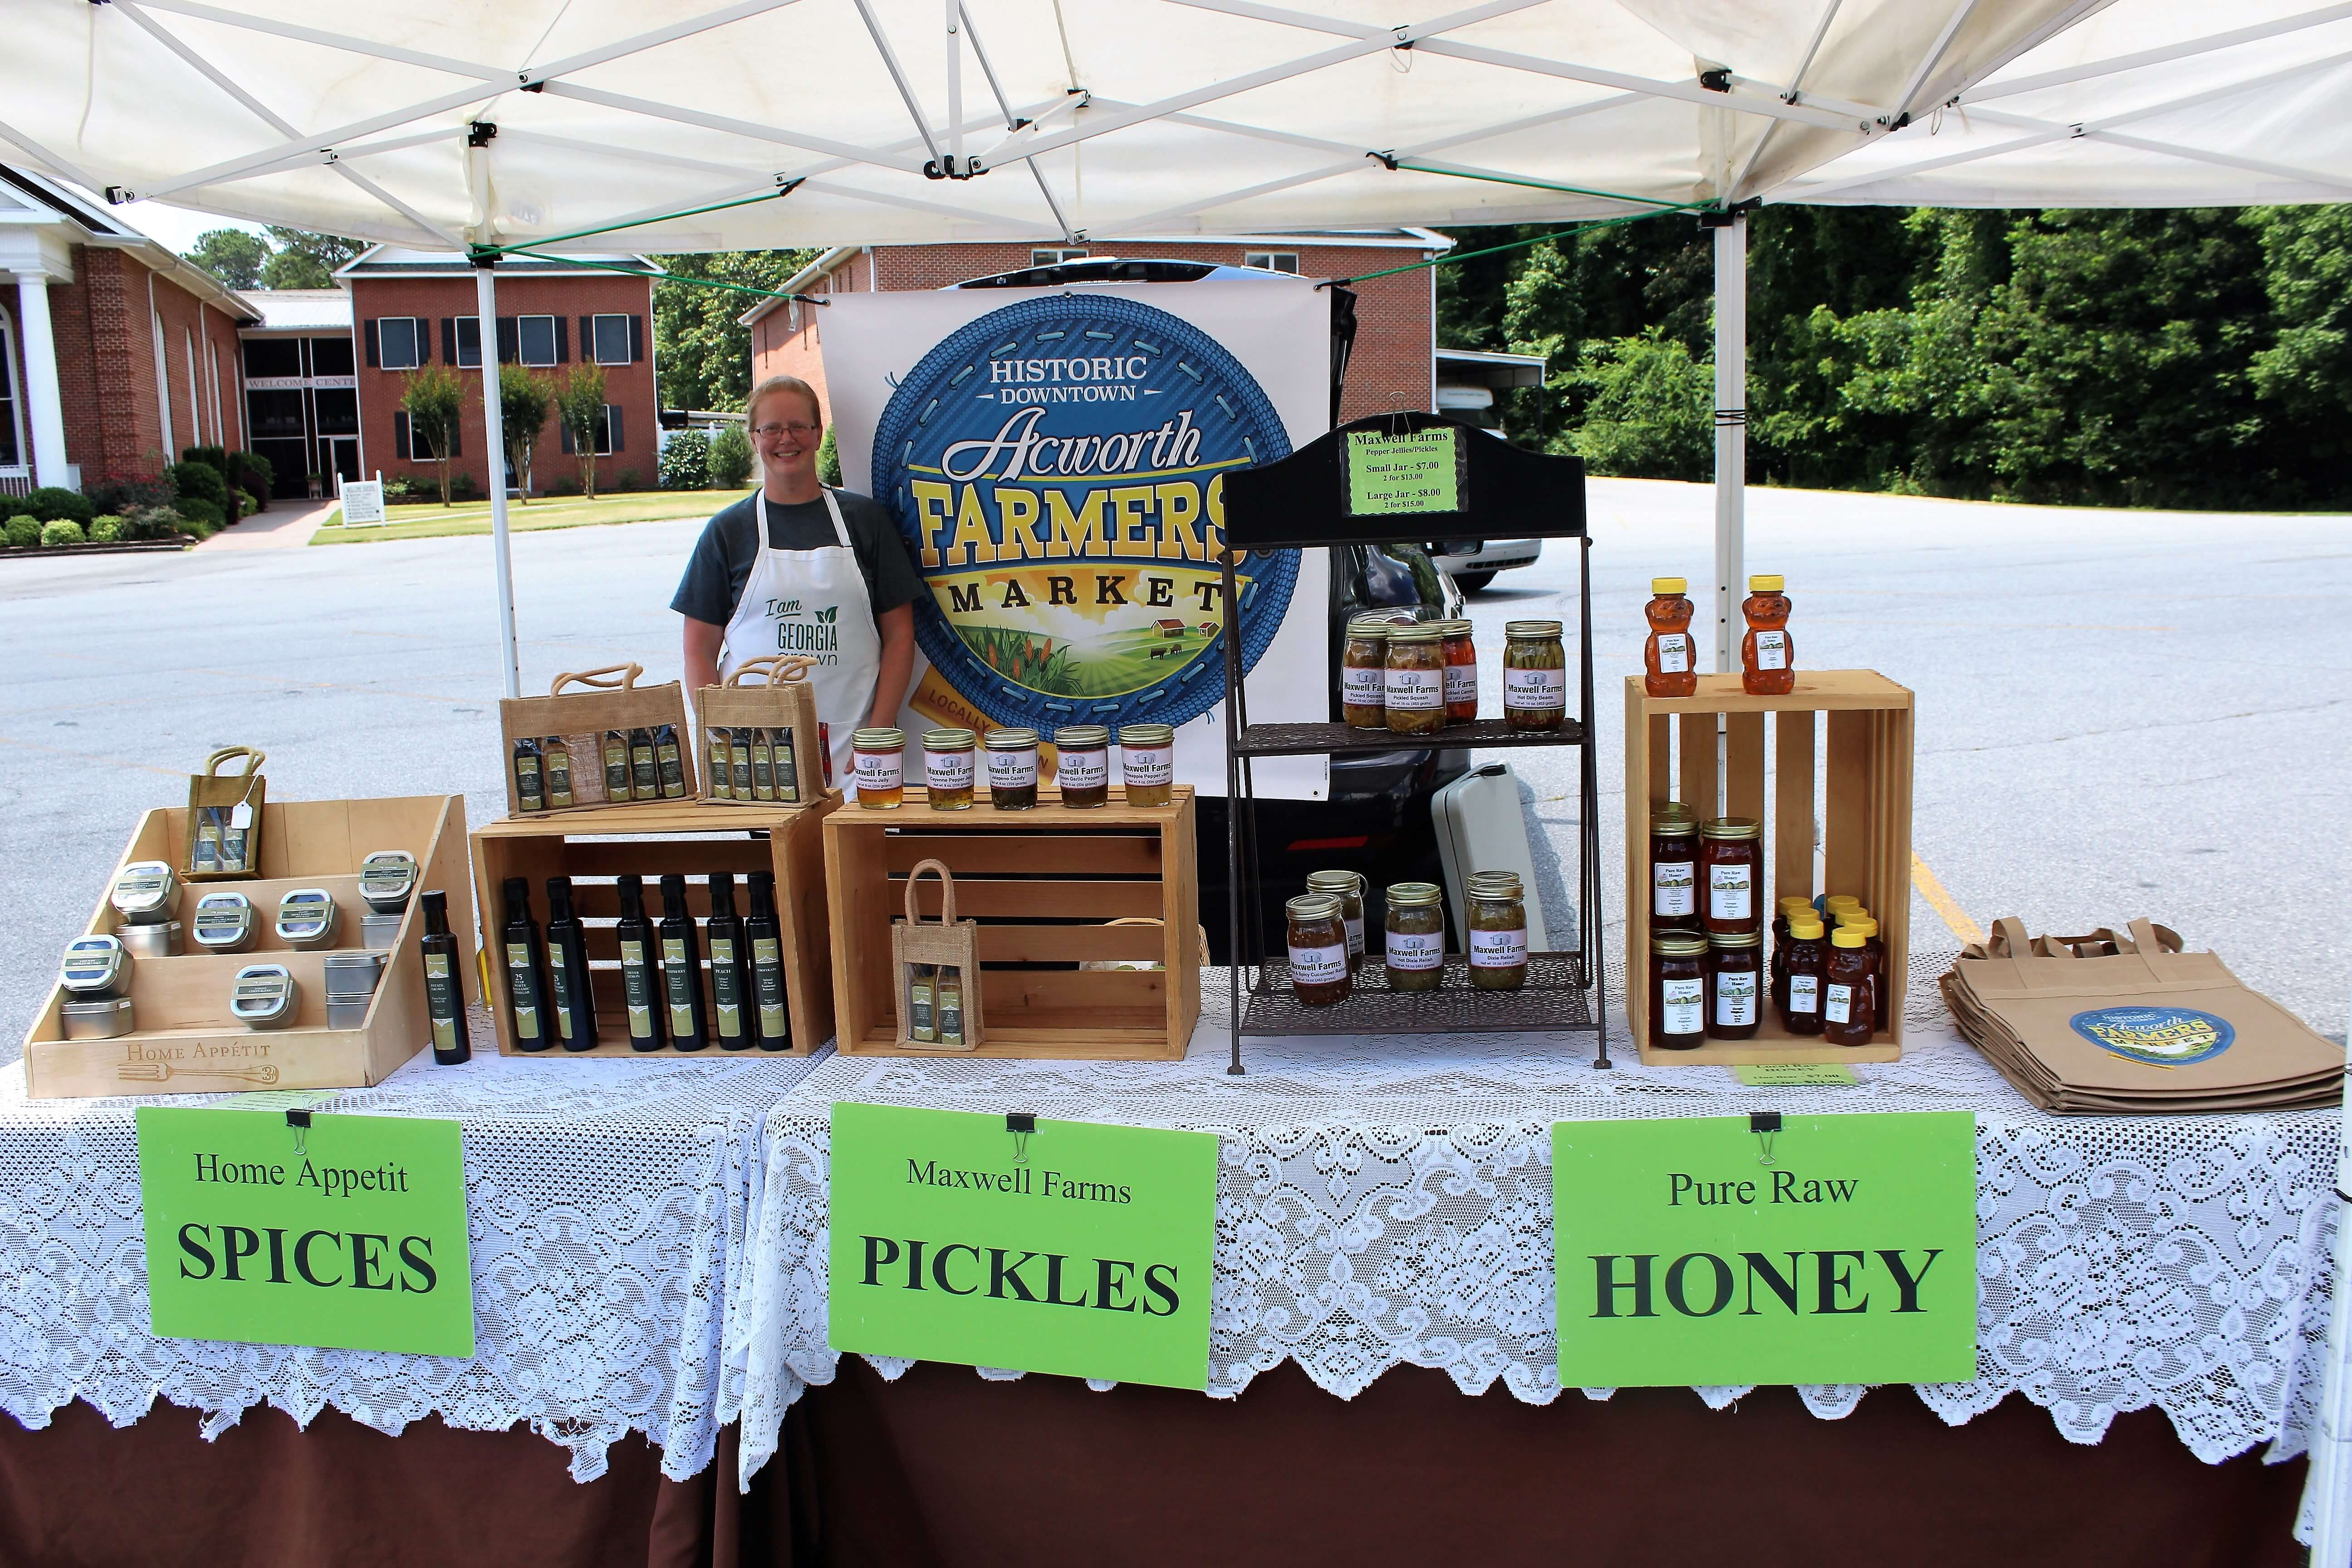 Acworth Farmers Market Offers Farm Goods and Much More